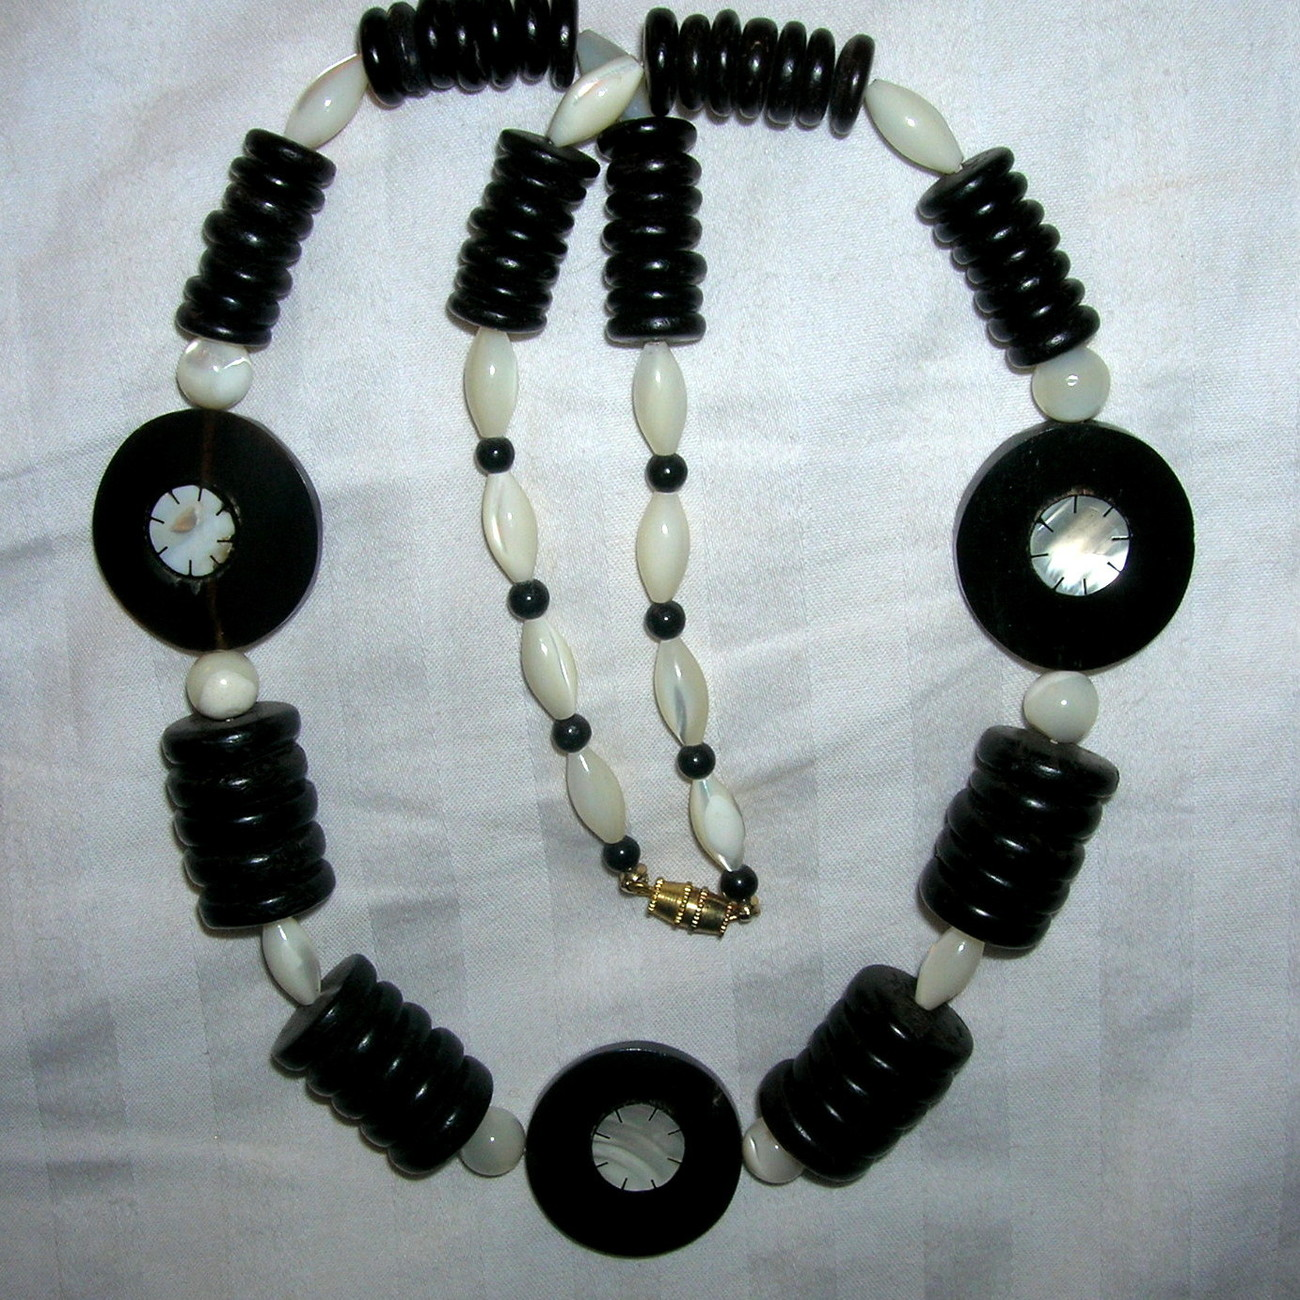 Vintage Inlaid Mother of Pearl Buffalo Horn MOP Black Coco Bead Necklace